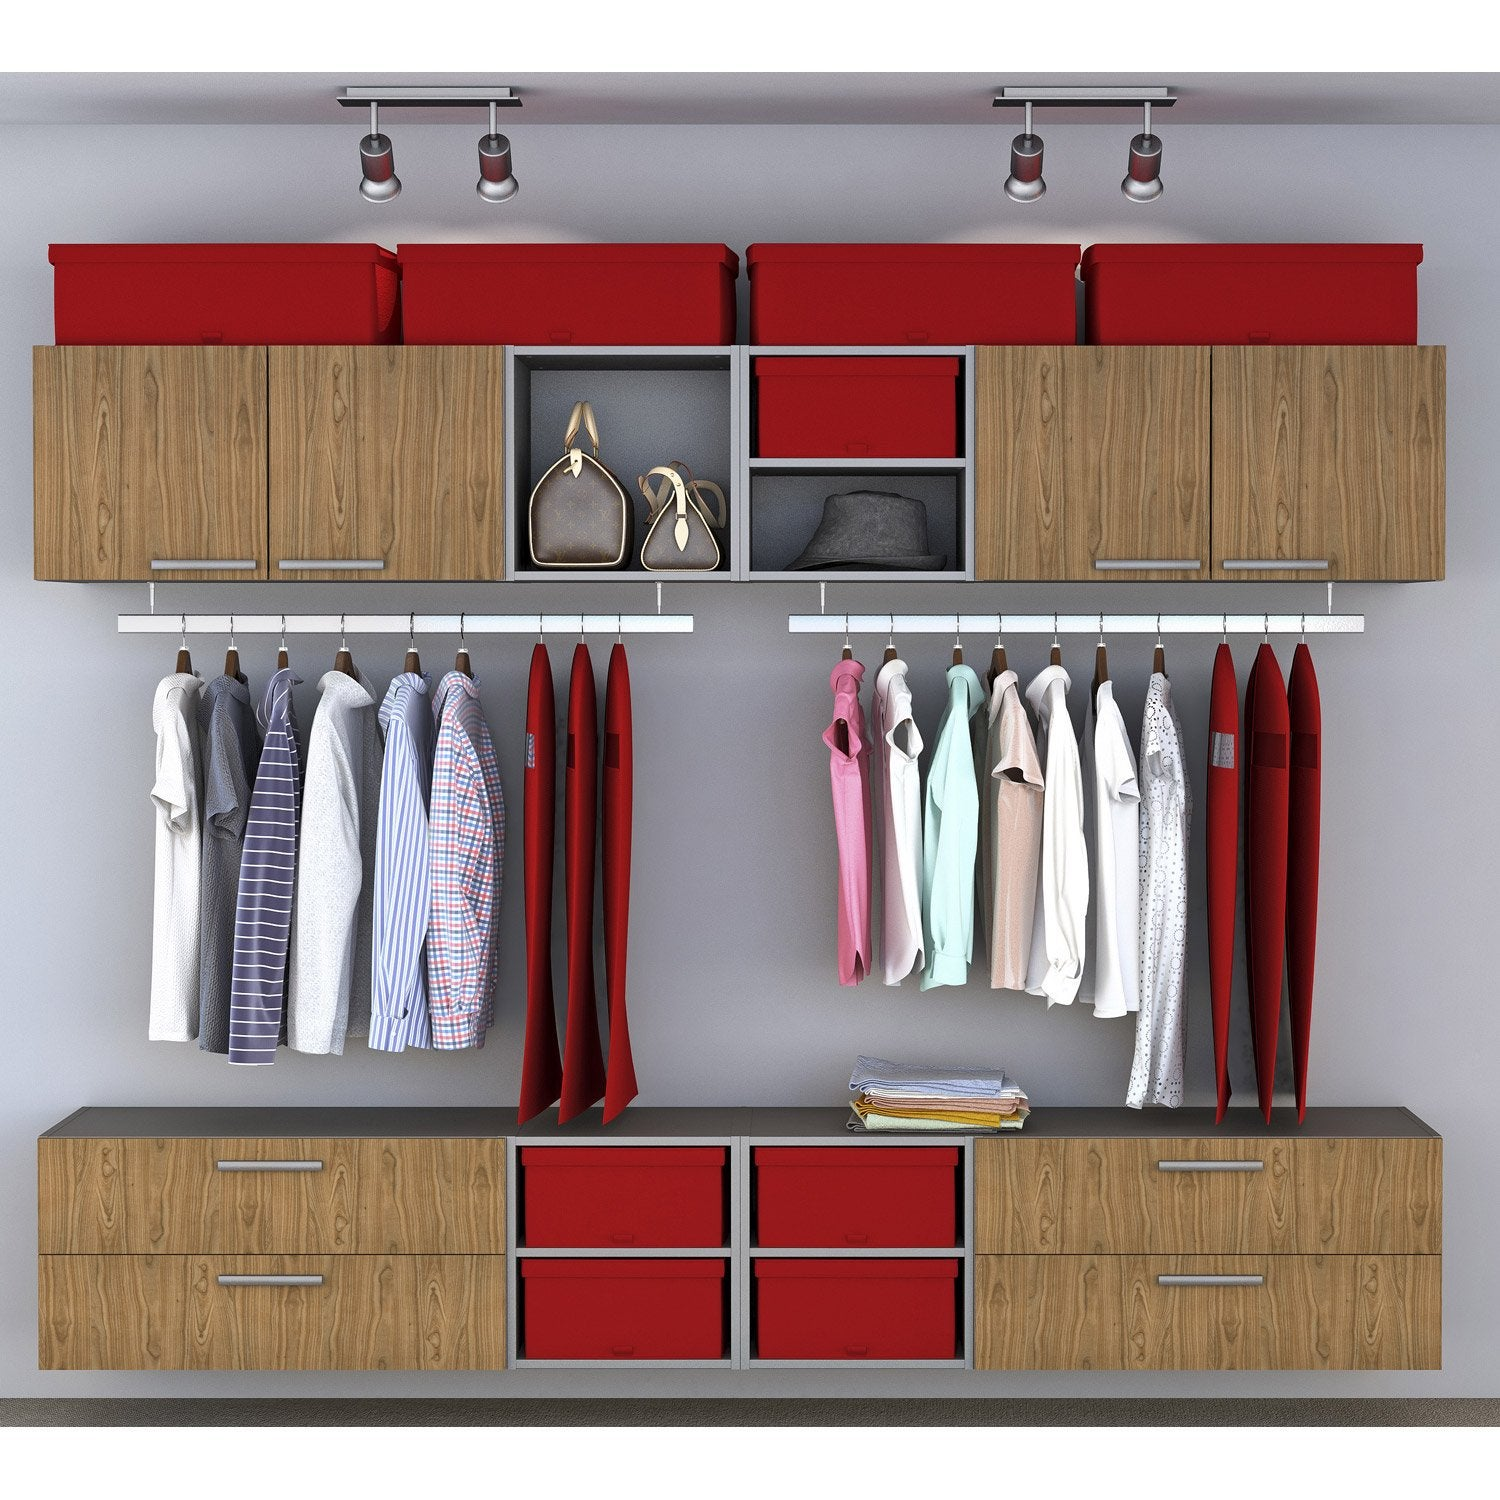 Dressing spaceo home effet ch ne leroy merlin - Tablette chene leroy merlin ...